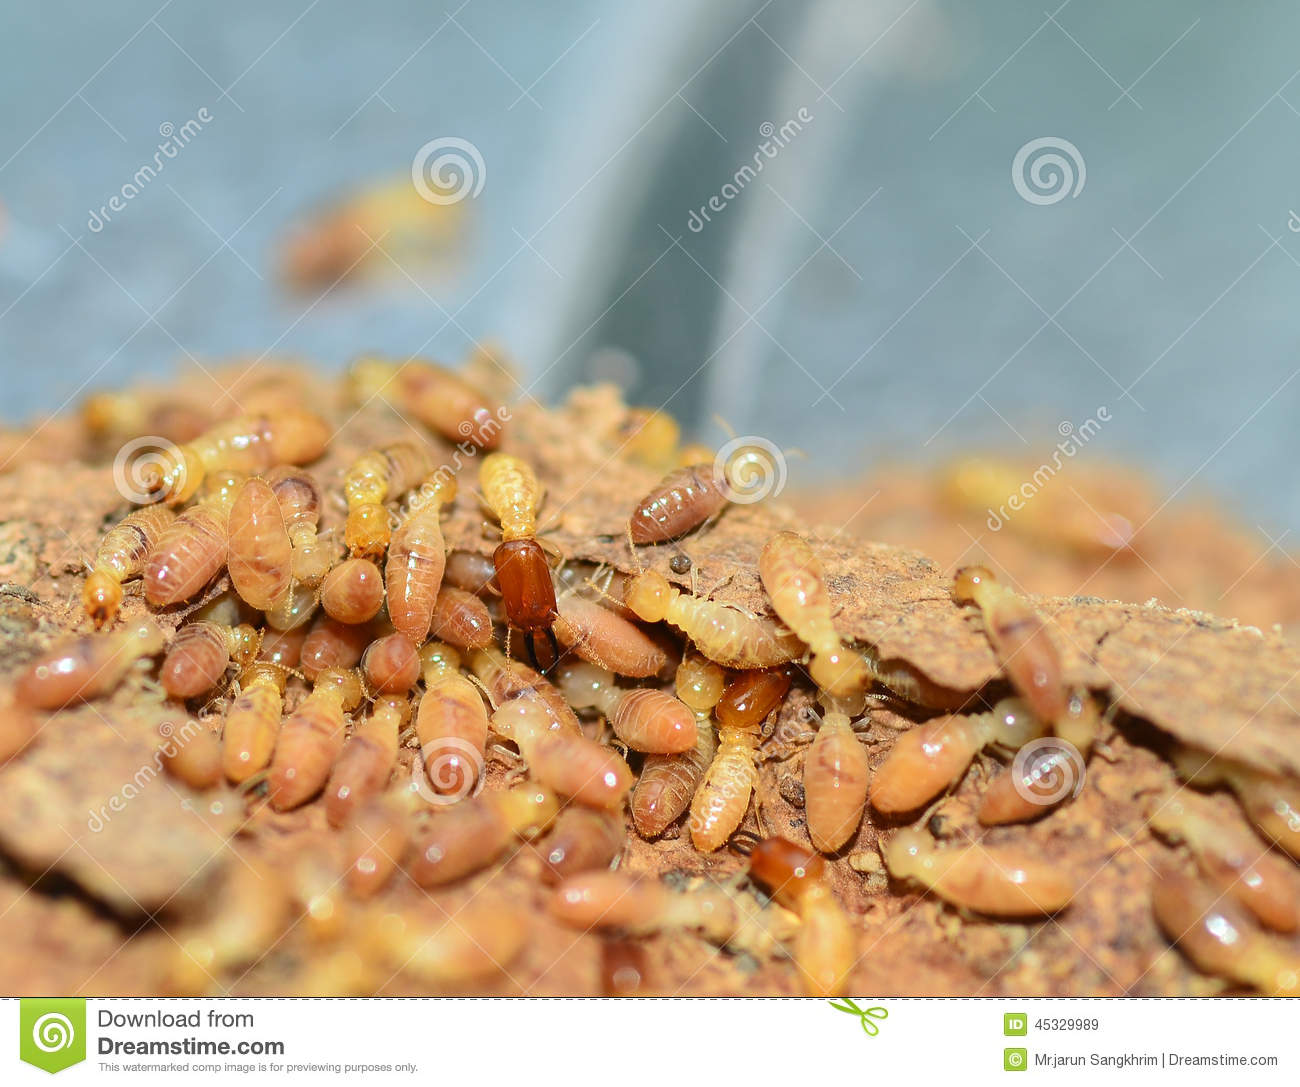 Tiny Desctructors: Termites - What Homeowners Should Know |Termites Eating House